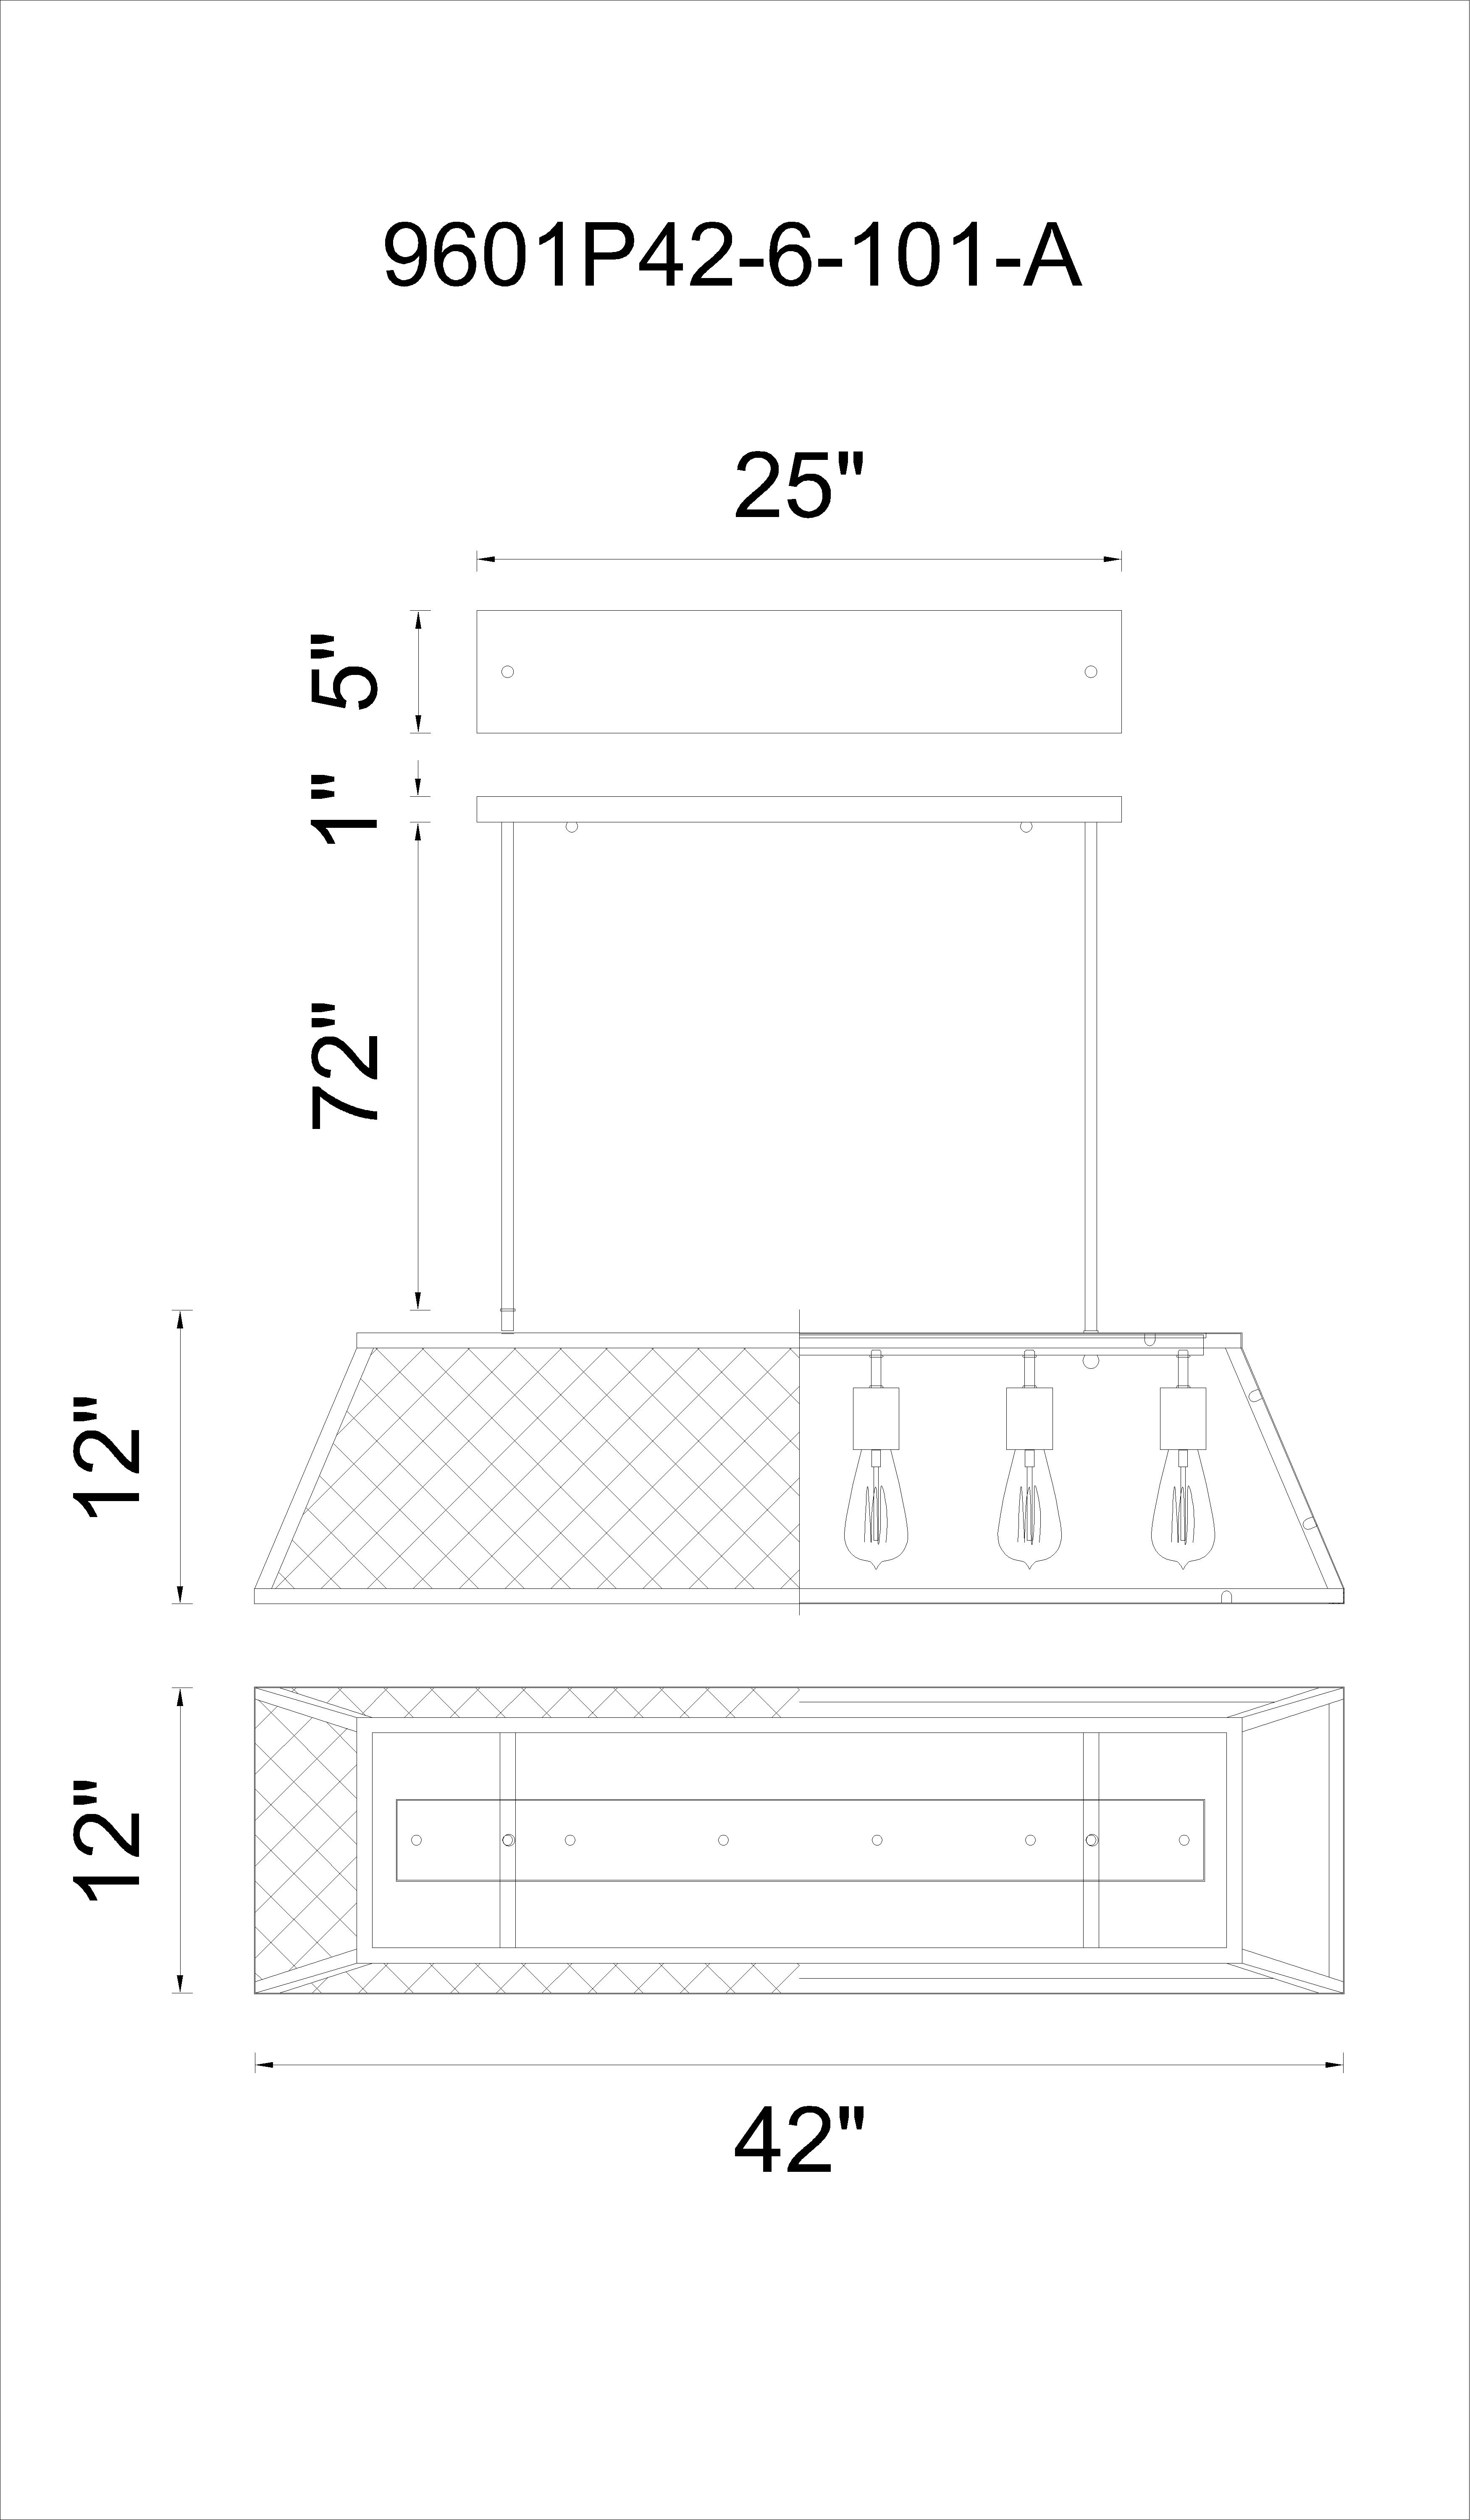 CWI Lighting Alyson 6 Light Down Chandelier With Black Finish Model: 9601P42-6-101 Line Drawing